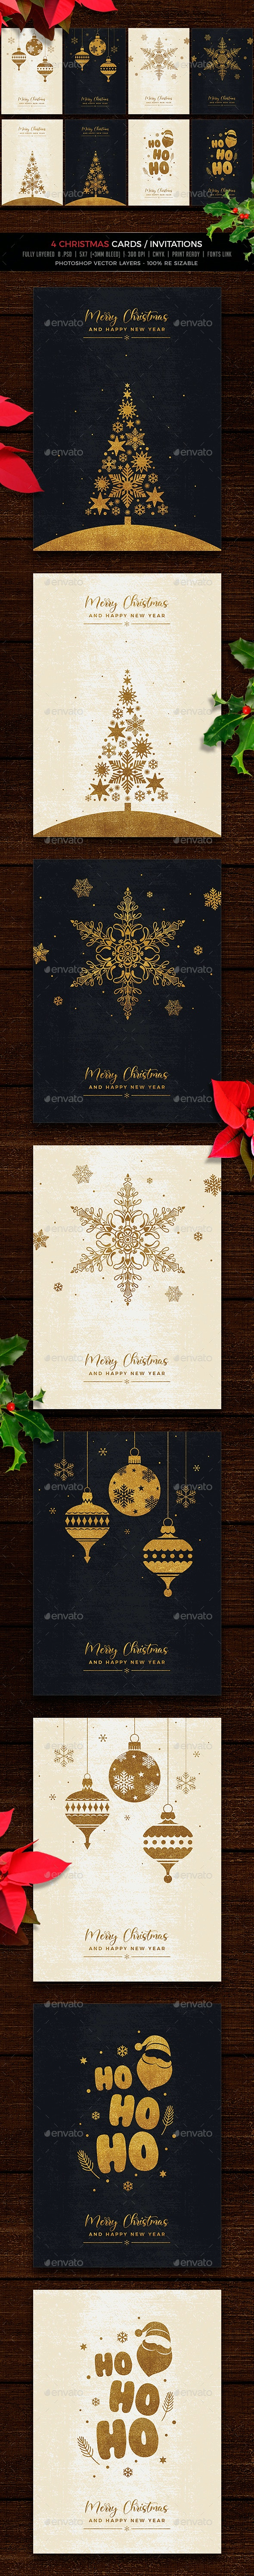 Gold & Vintage Christmas Cards/Invitations - Cards & Invites Print Templates